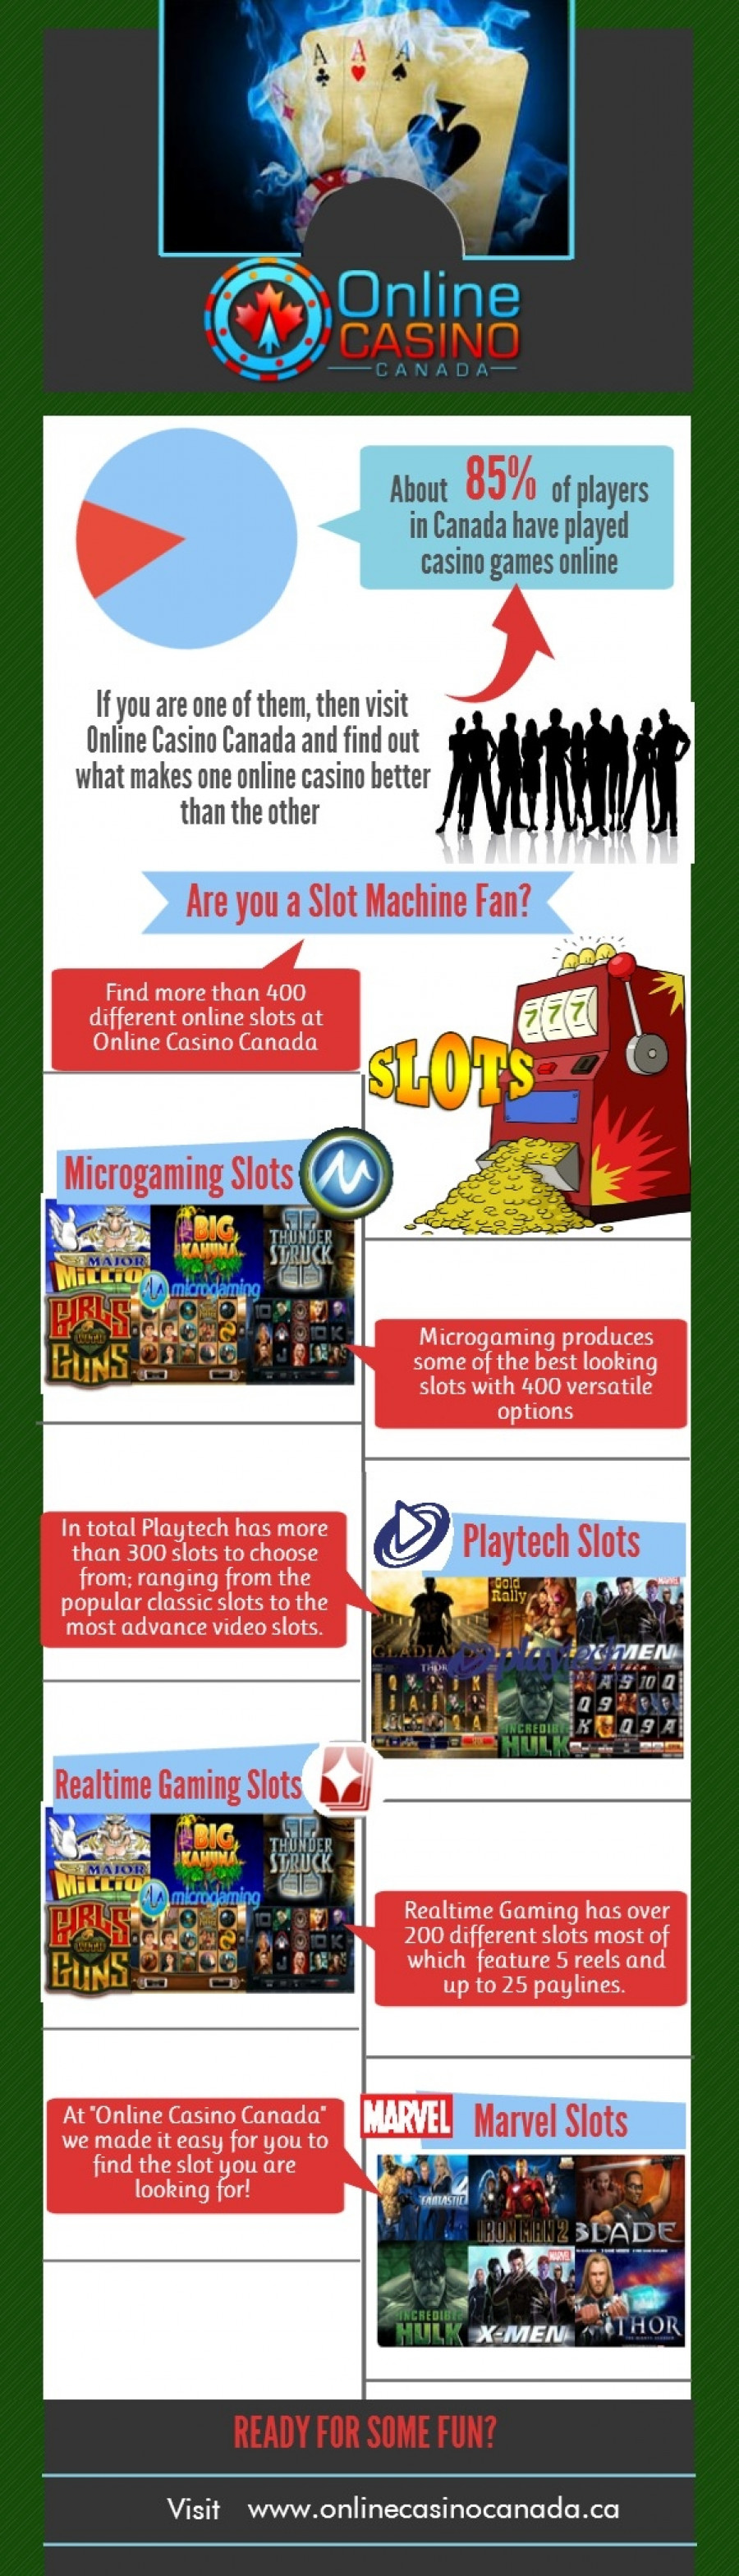 154093? w=900 - 4 Reasons Why Canada's Online Casino Industry is SO Big